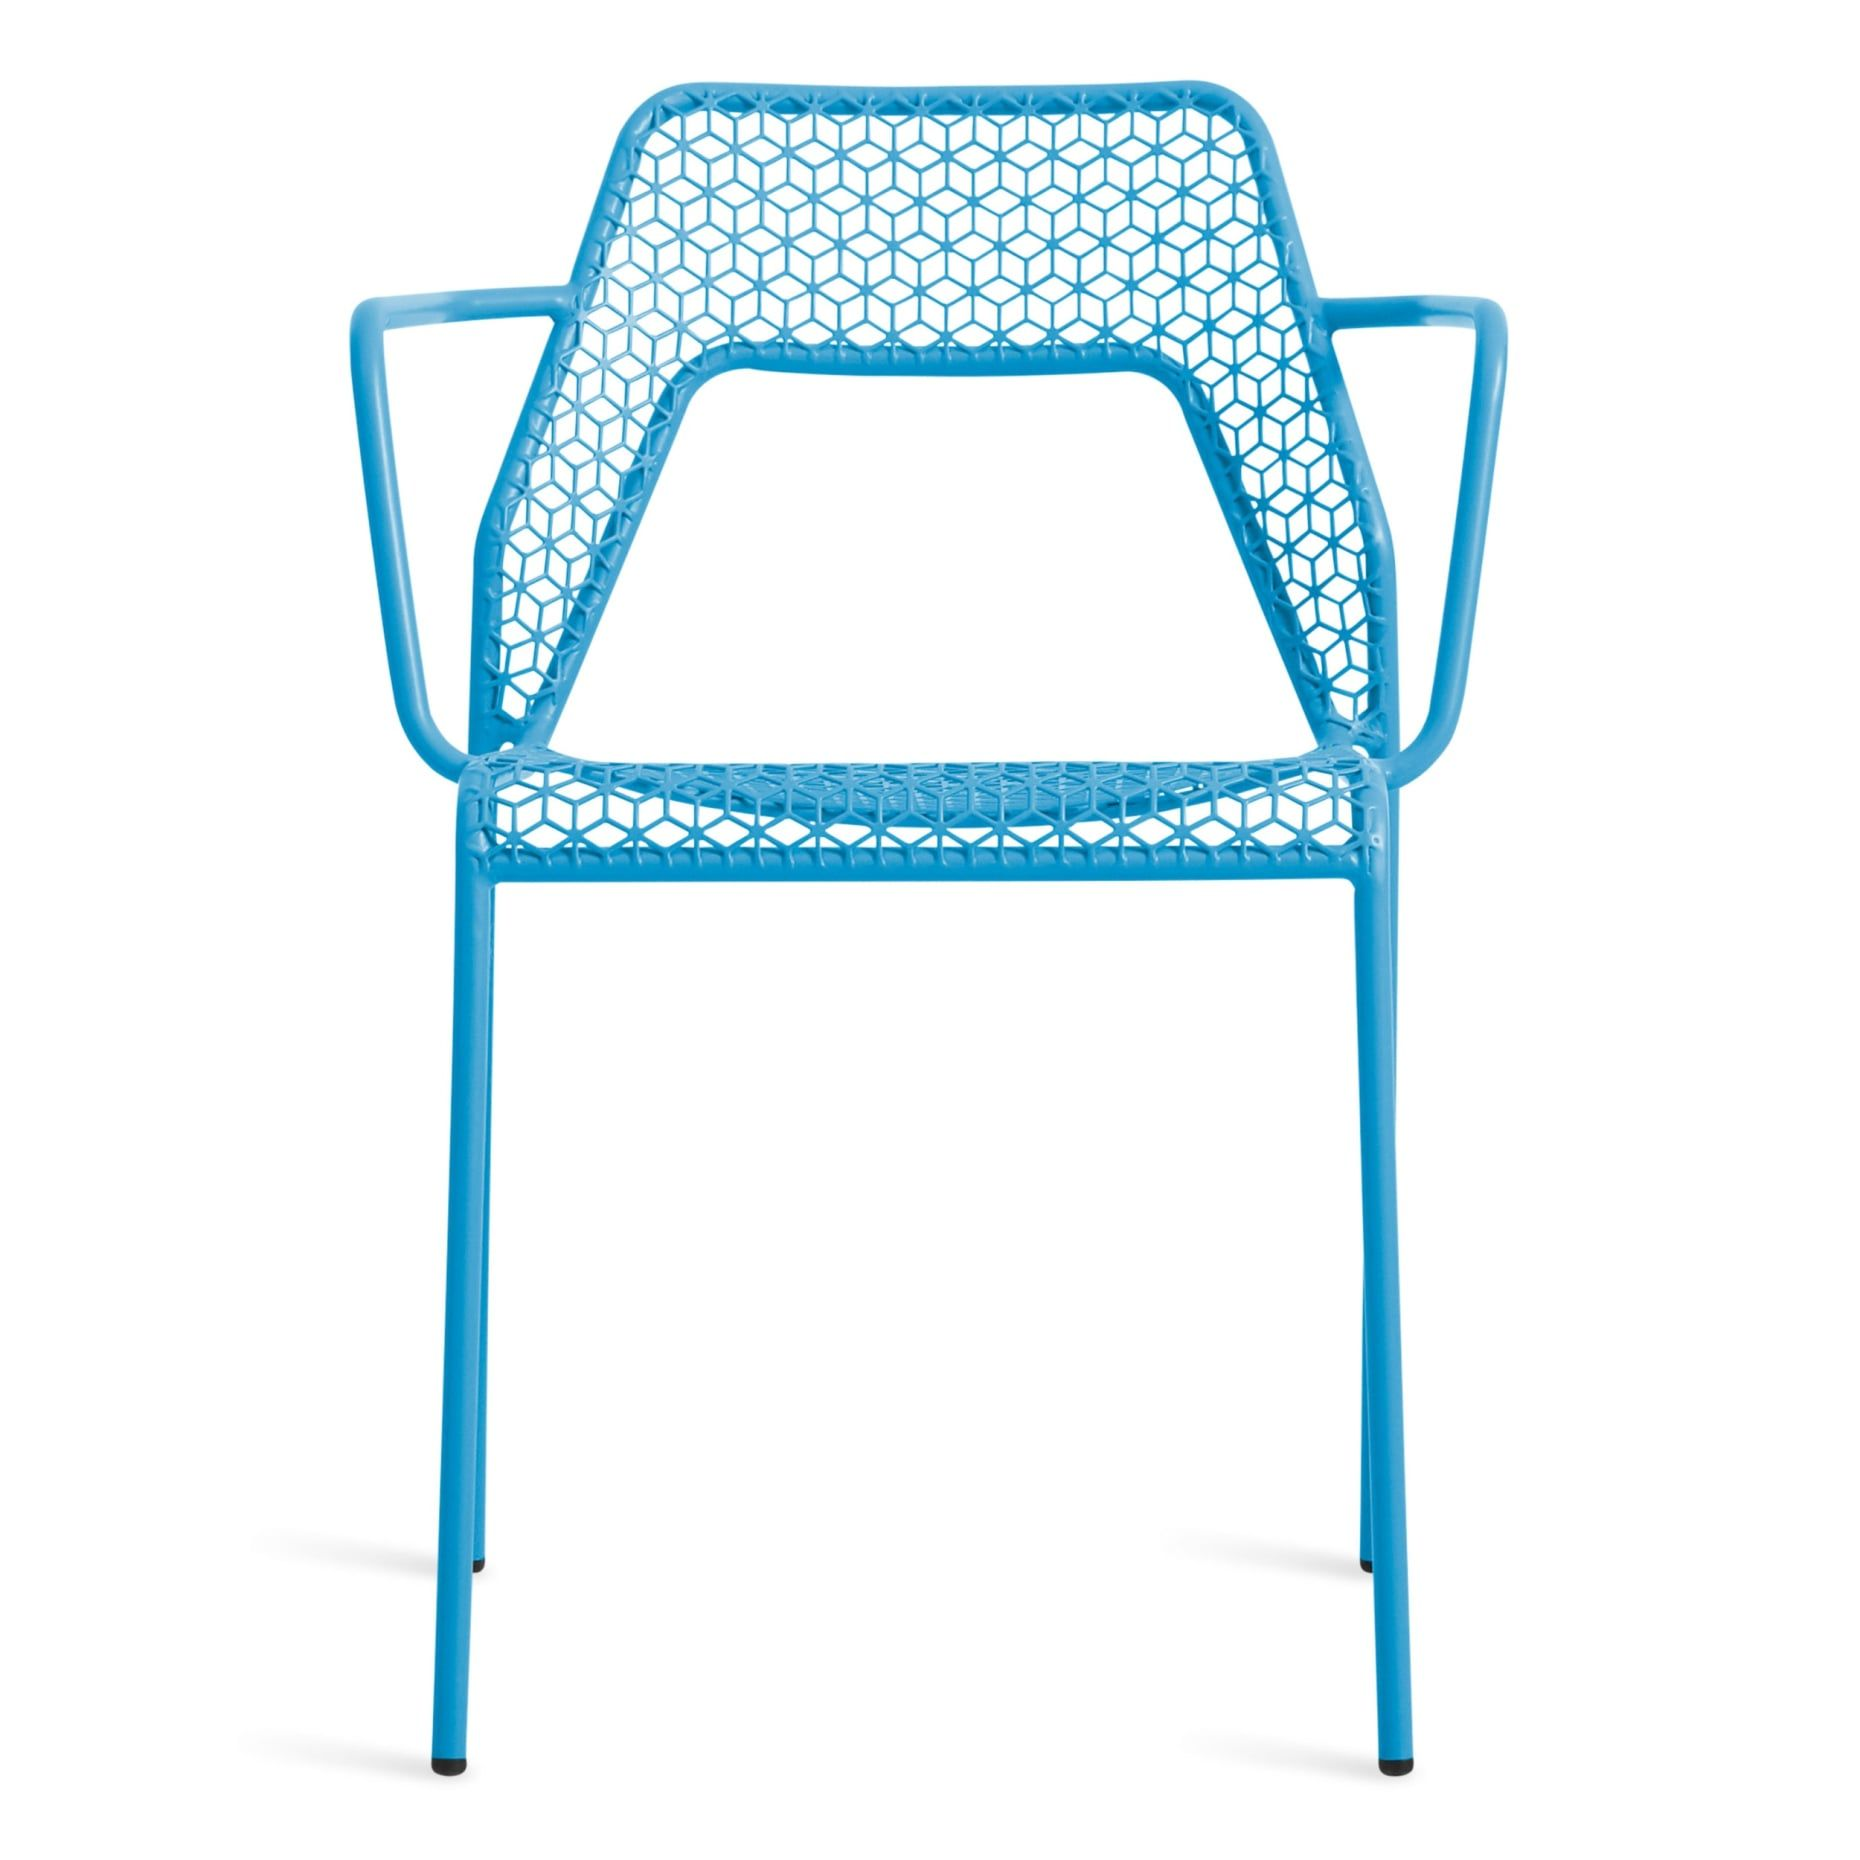 Hot Mesh Armchair Modern Outdoor Furniture Outdoor Armchair Patio Dining Chairs